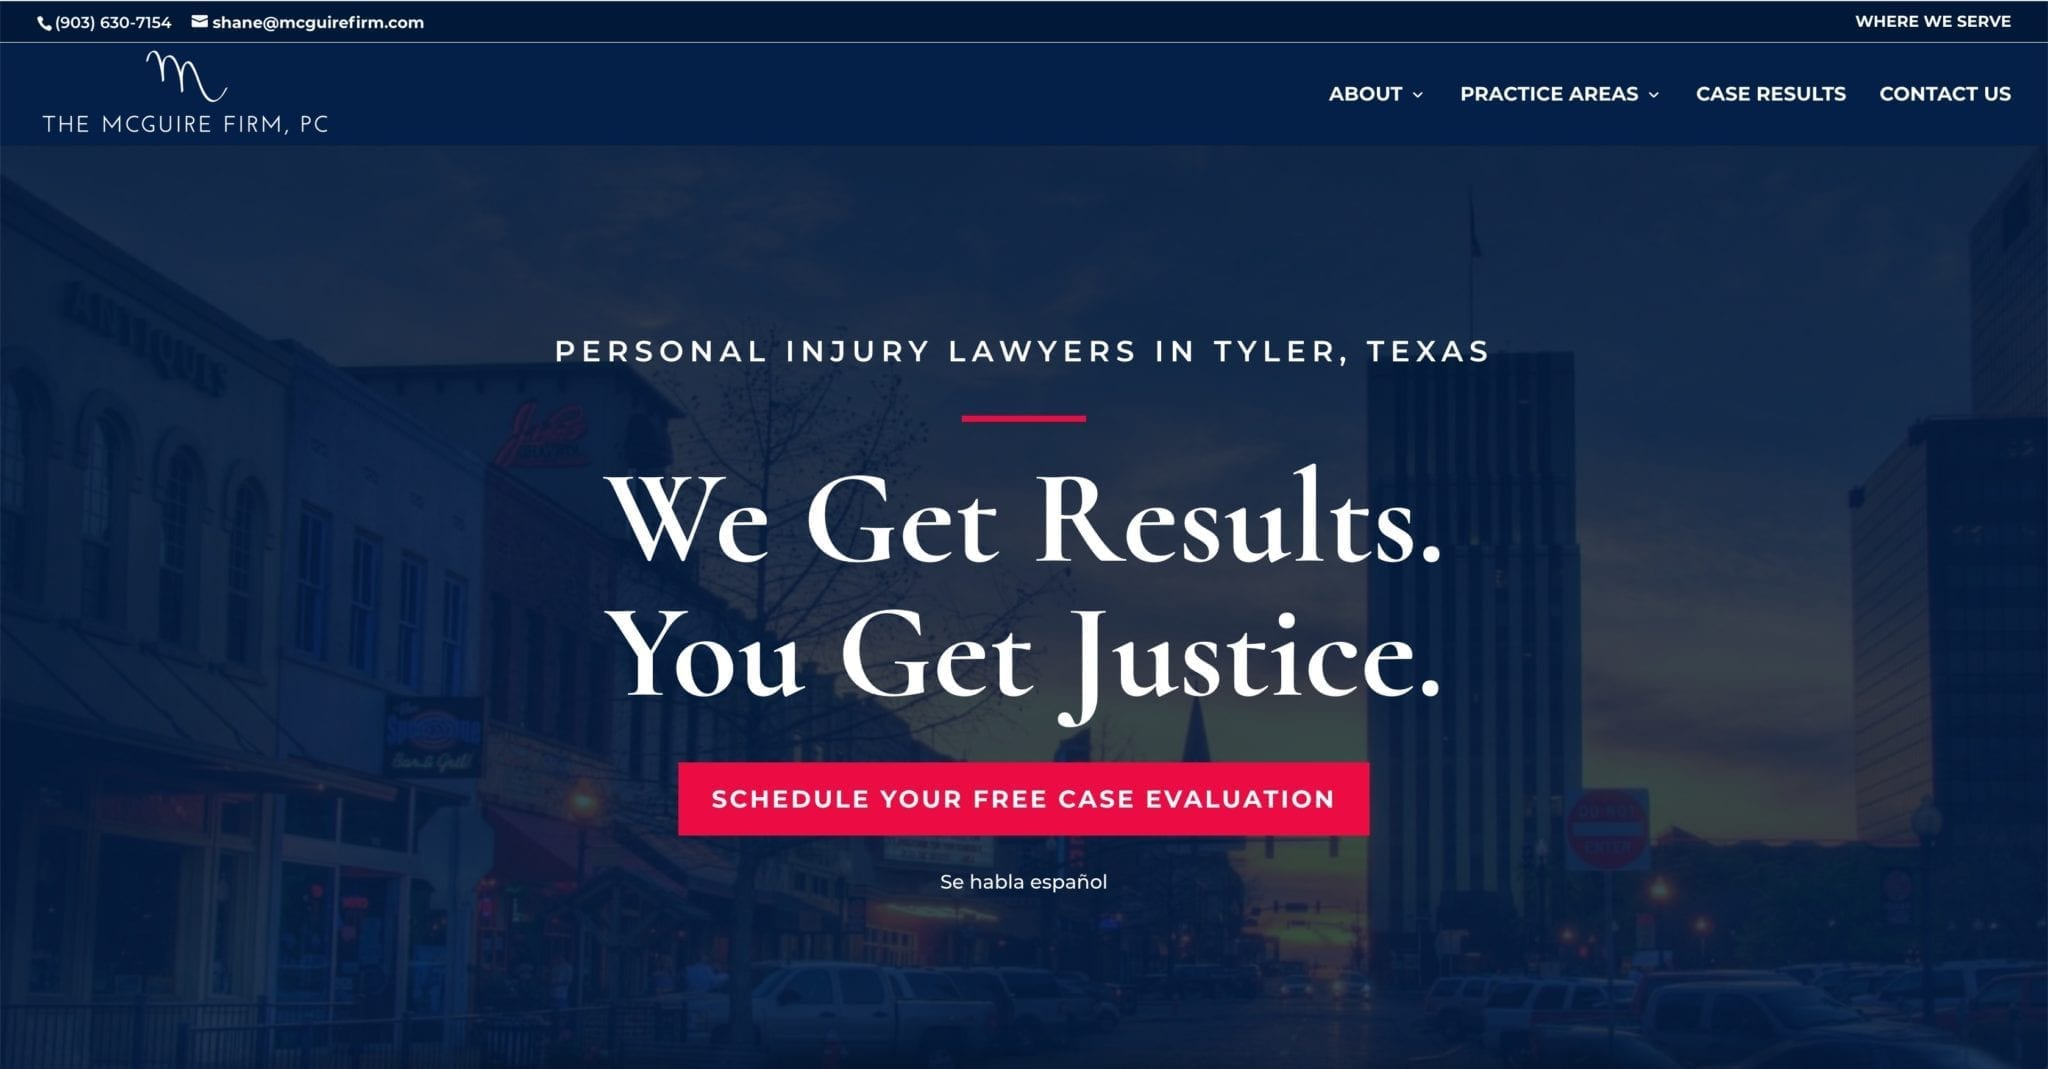 McGuire Firm Personal Injury Attorneys Website